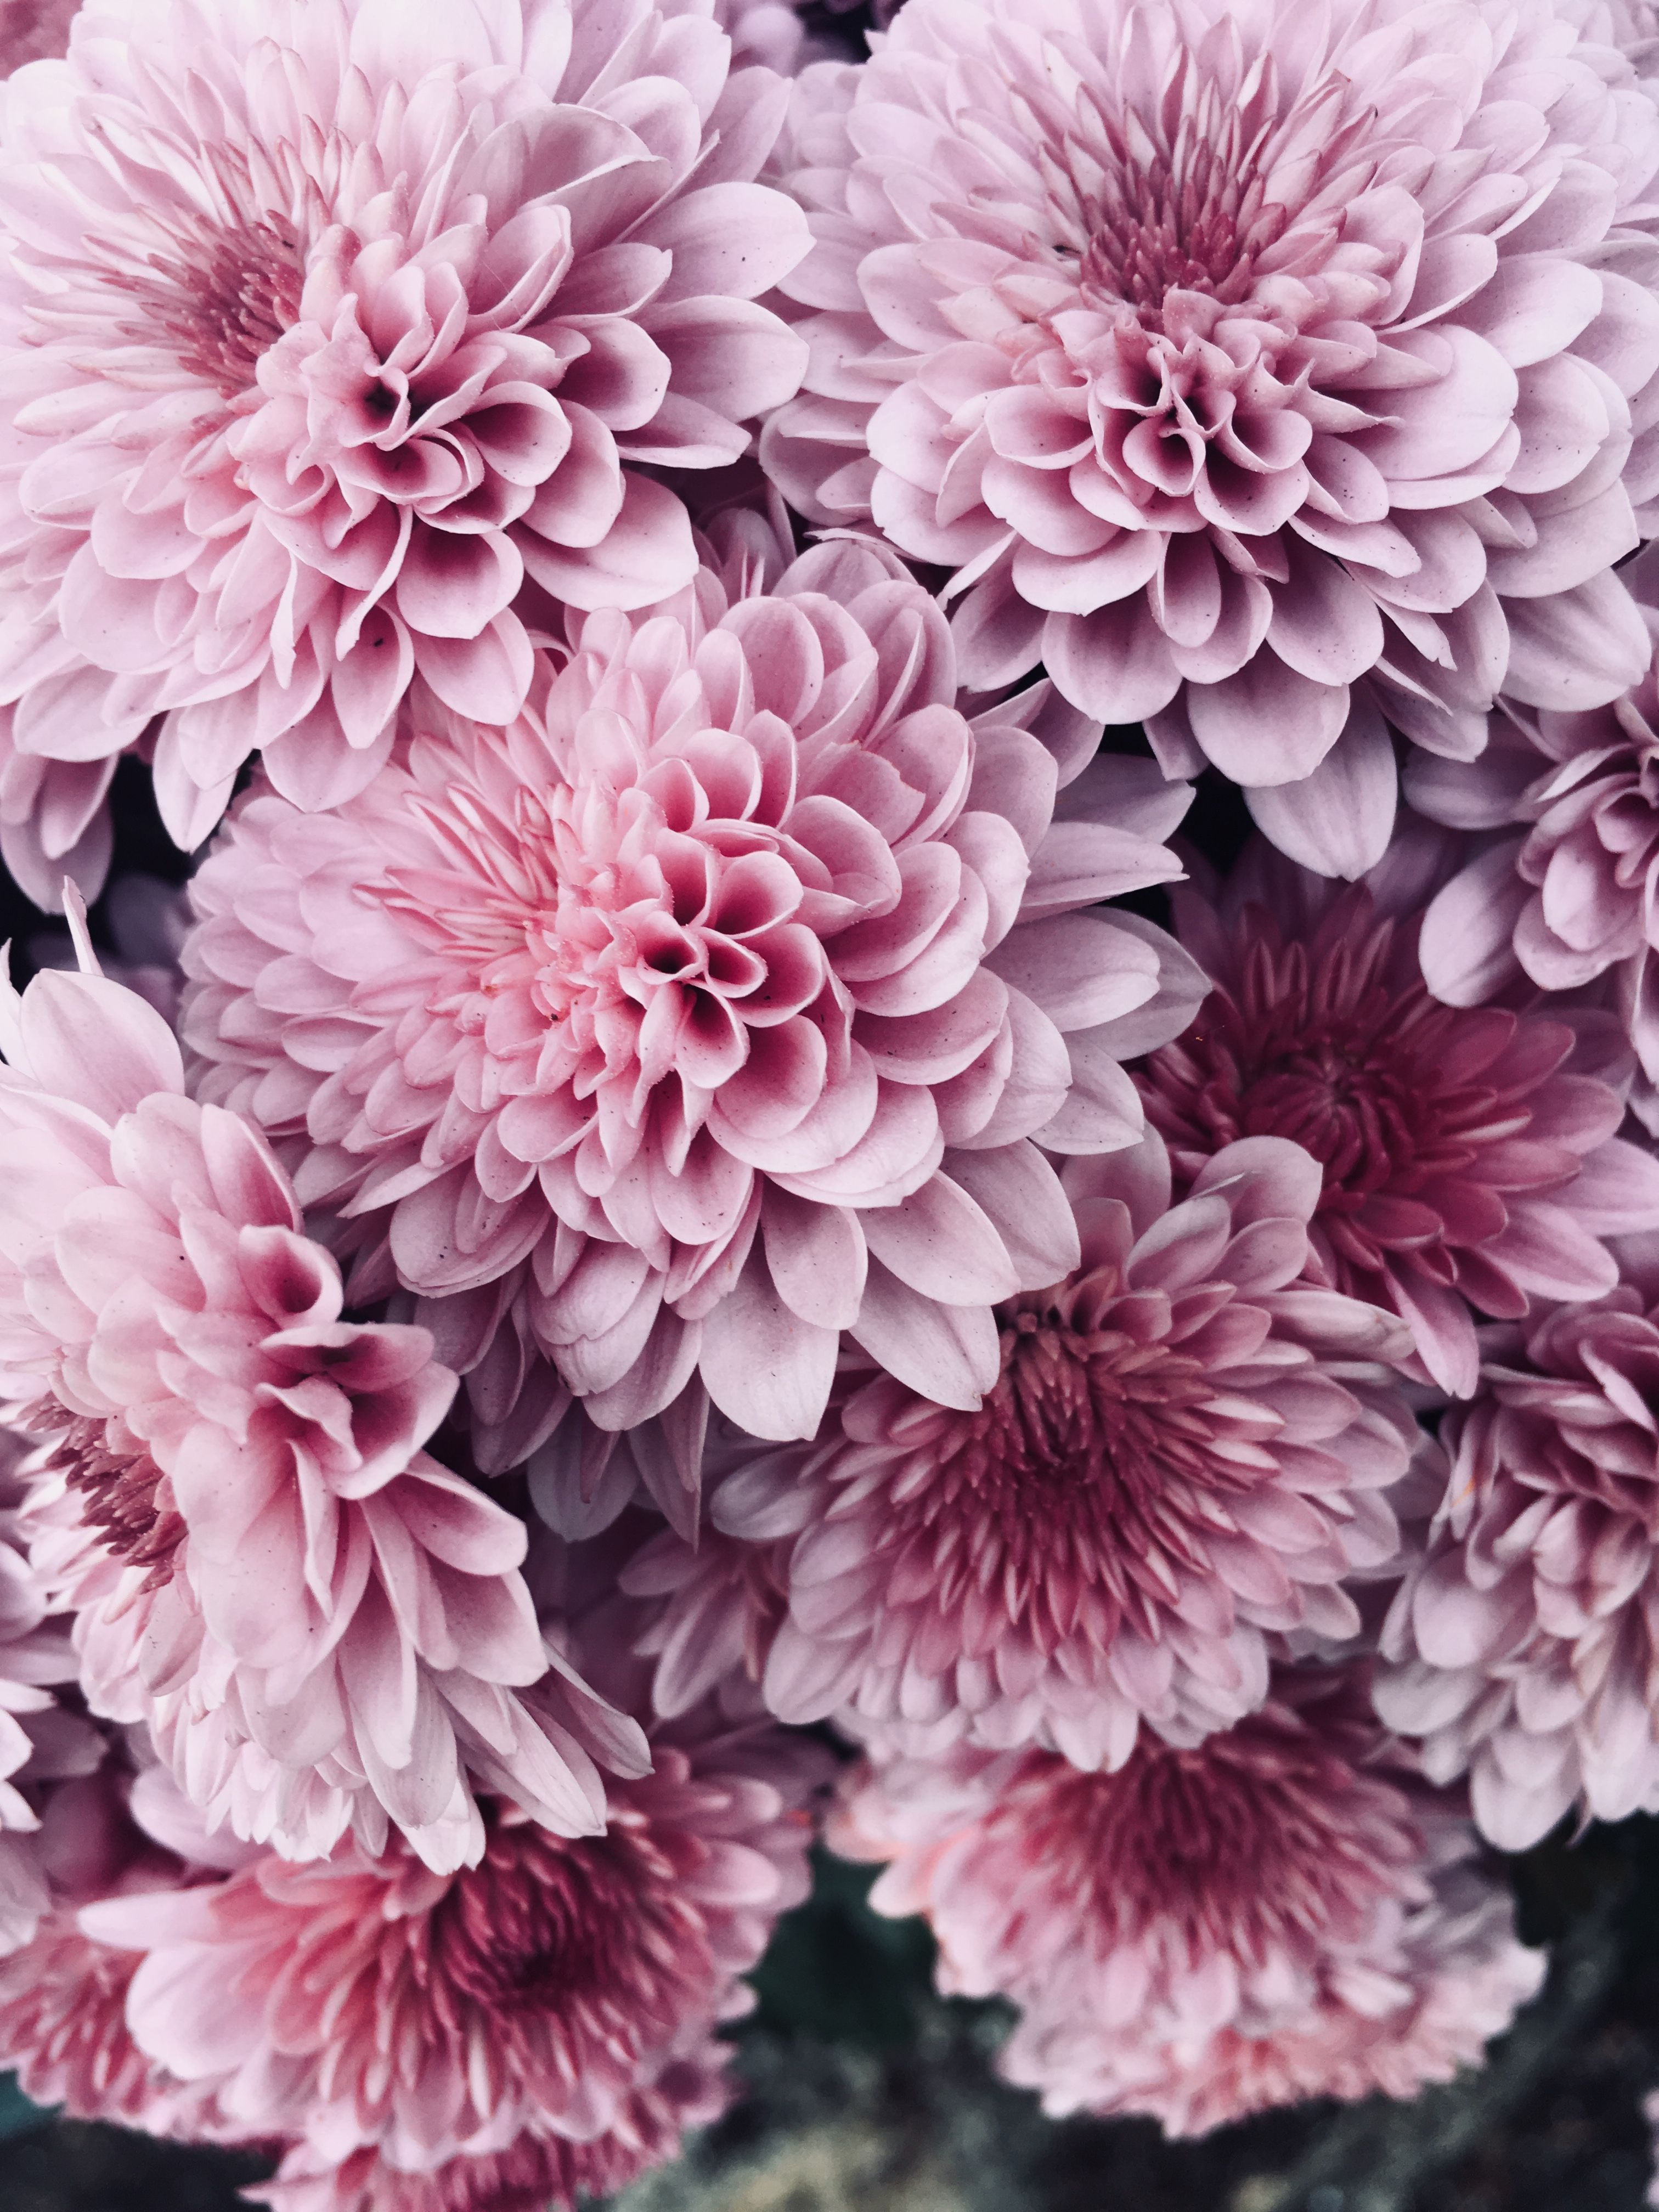 Pink Flowers Background Pink Flowers Background Background Climbingroses Dahlias Flowers Pan In 2020 Pink Flowers Background Flower Backgrounds Pink Flowers